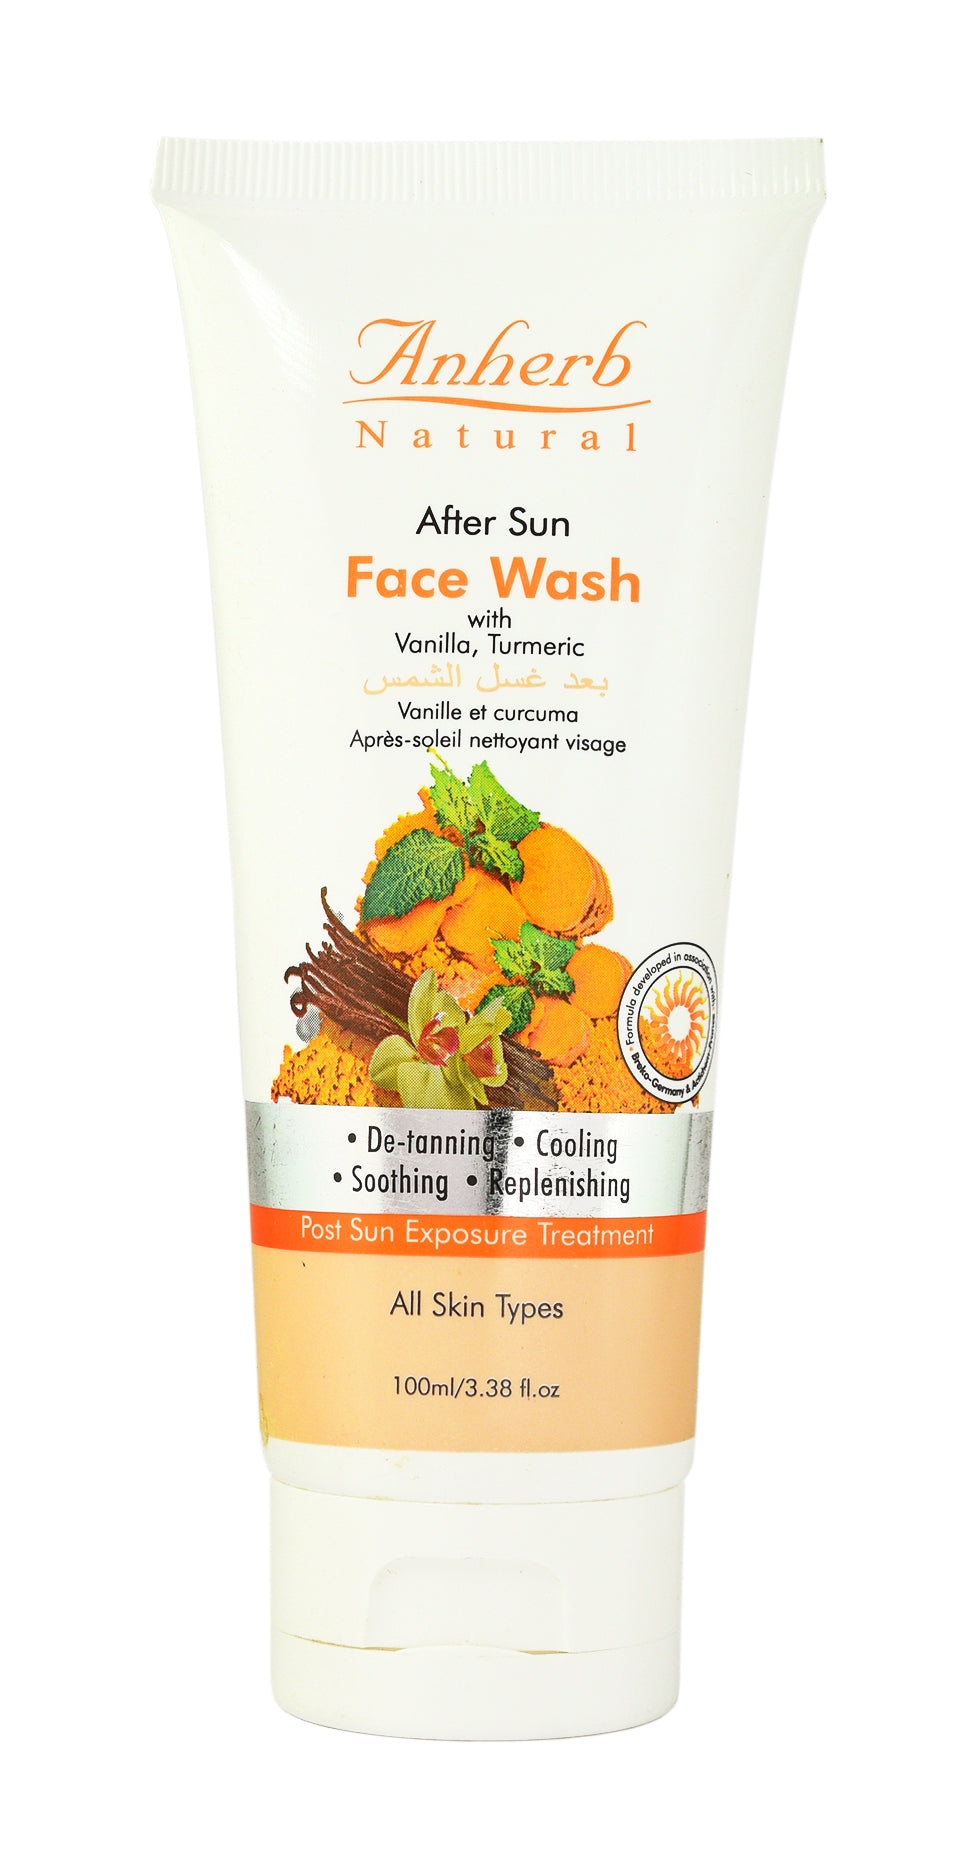 After Sun Face Wash - 100g